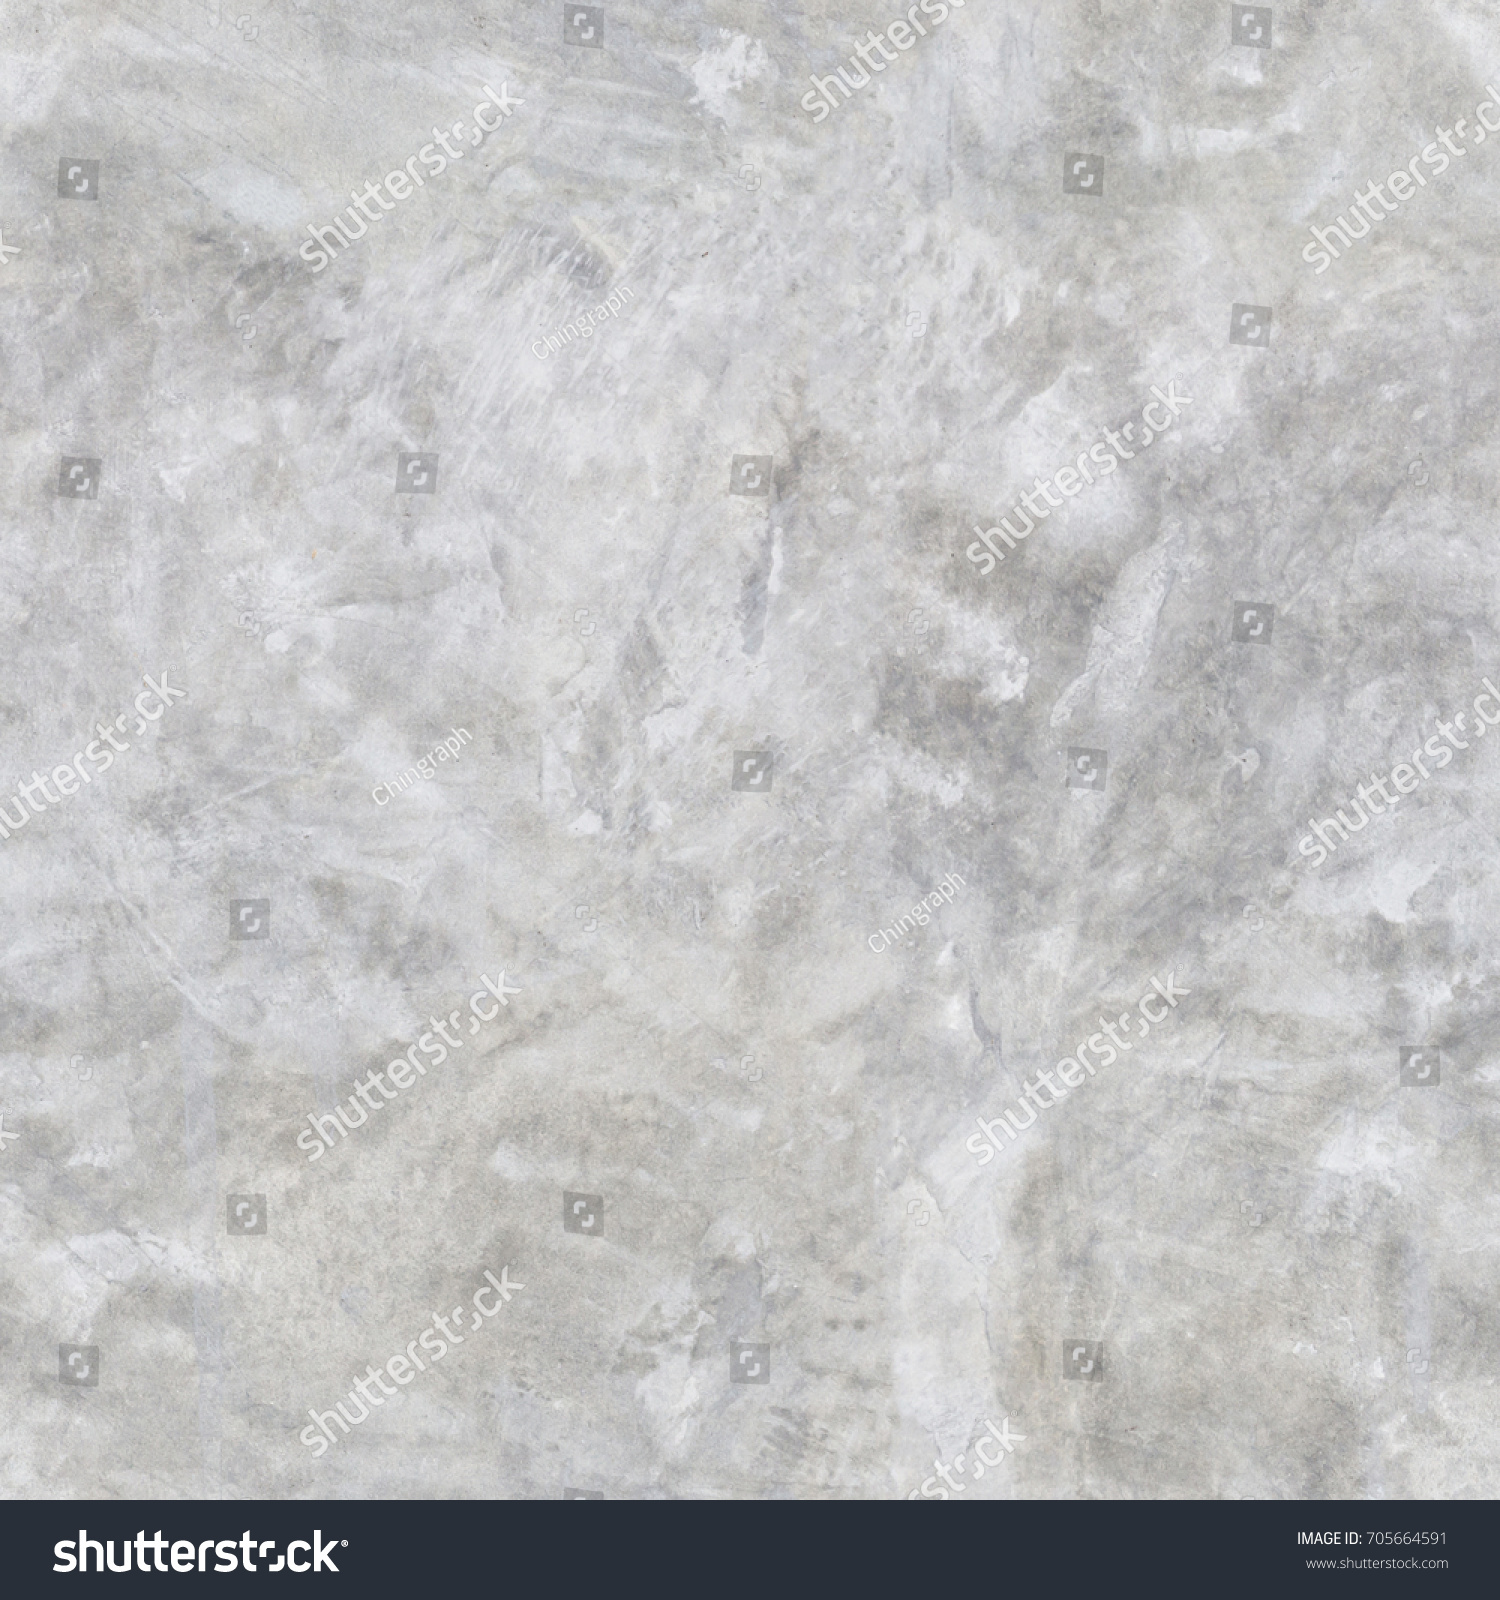 polished concrete floor texture seamless. Concrete Polished Seamless Texture Background. Aged Cement Backdrop. Loft Style Gray Wall Surface. Floor X